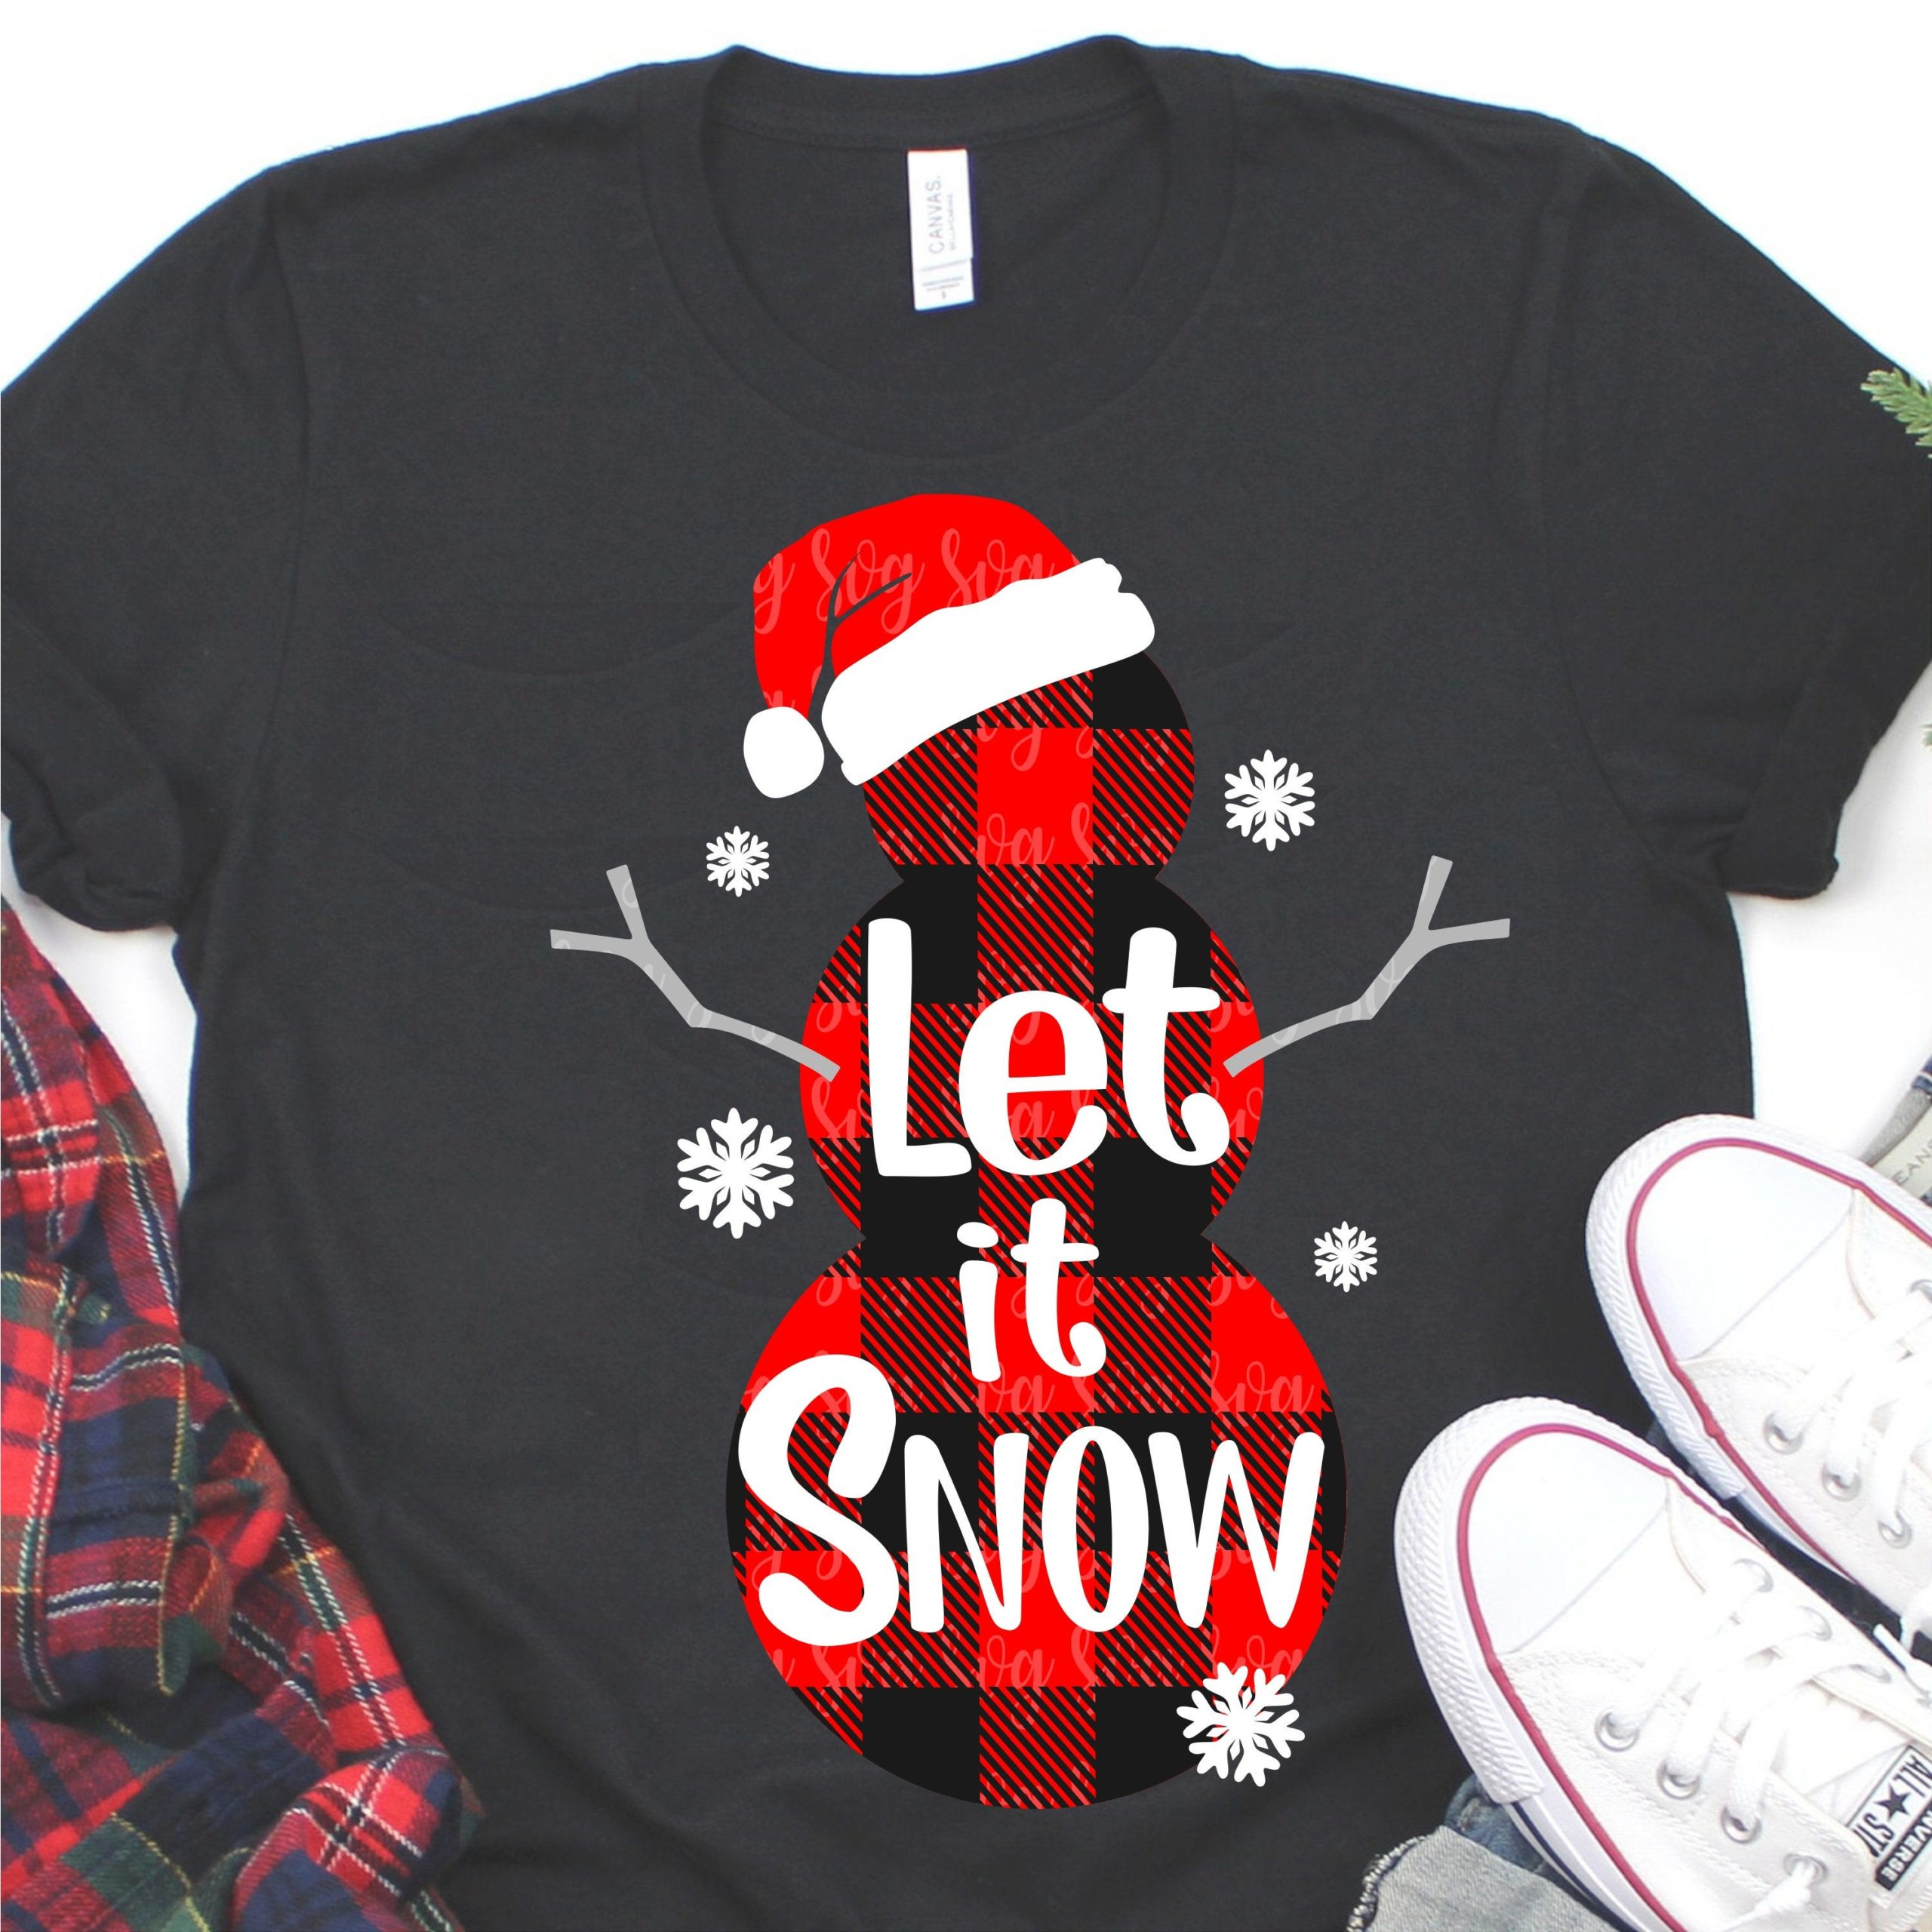 Snowman Svg Buffalo Plaid Svg Let It Snow Svg Winter Svg Cut Files Christmas Svg Snow Svg Snowflake Svg Snow Svg Svg Eps Dxf Svg For Cricut Svg For Cricut